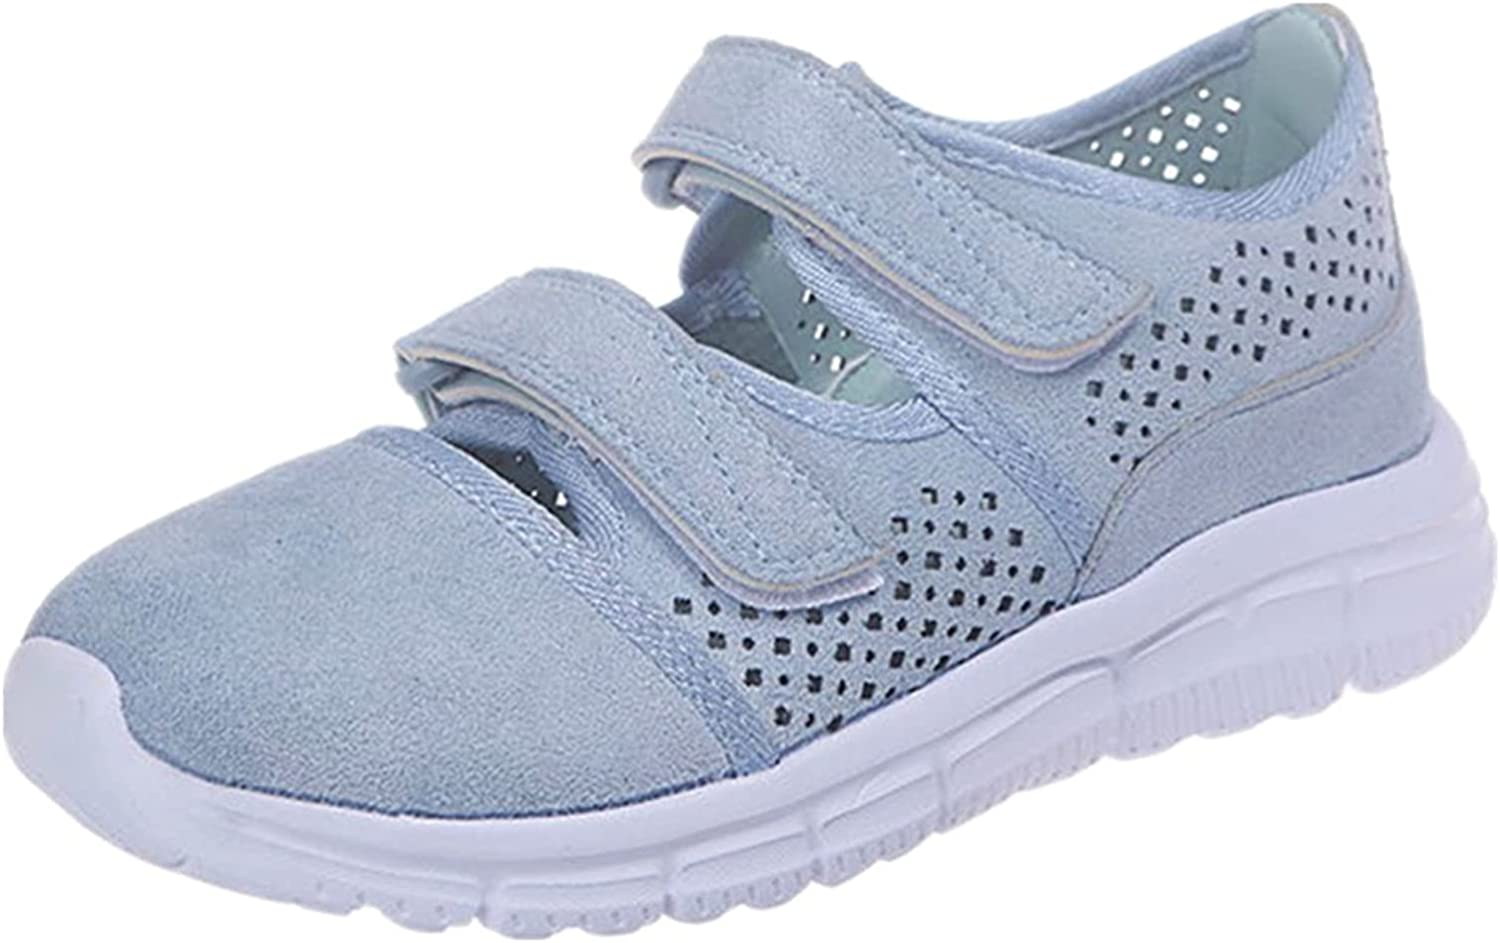 Popular Max 83% OFF product Johtae Walking Shoes for Women on Breathable Casual Slip Sneaker